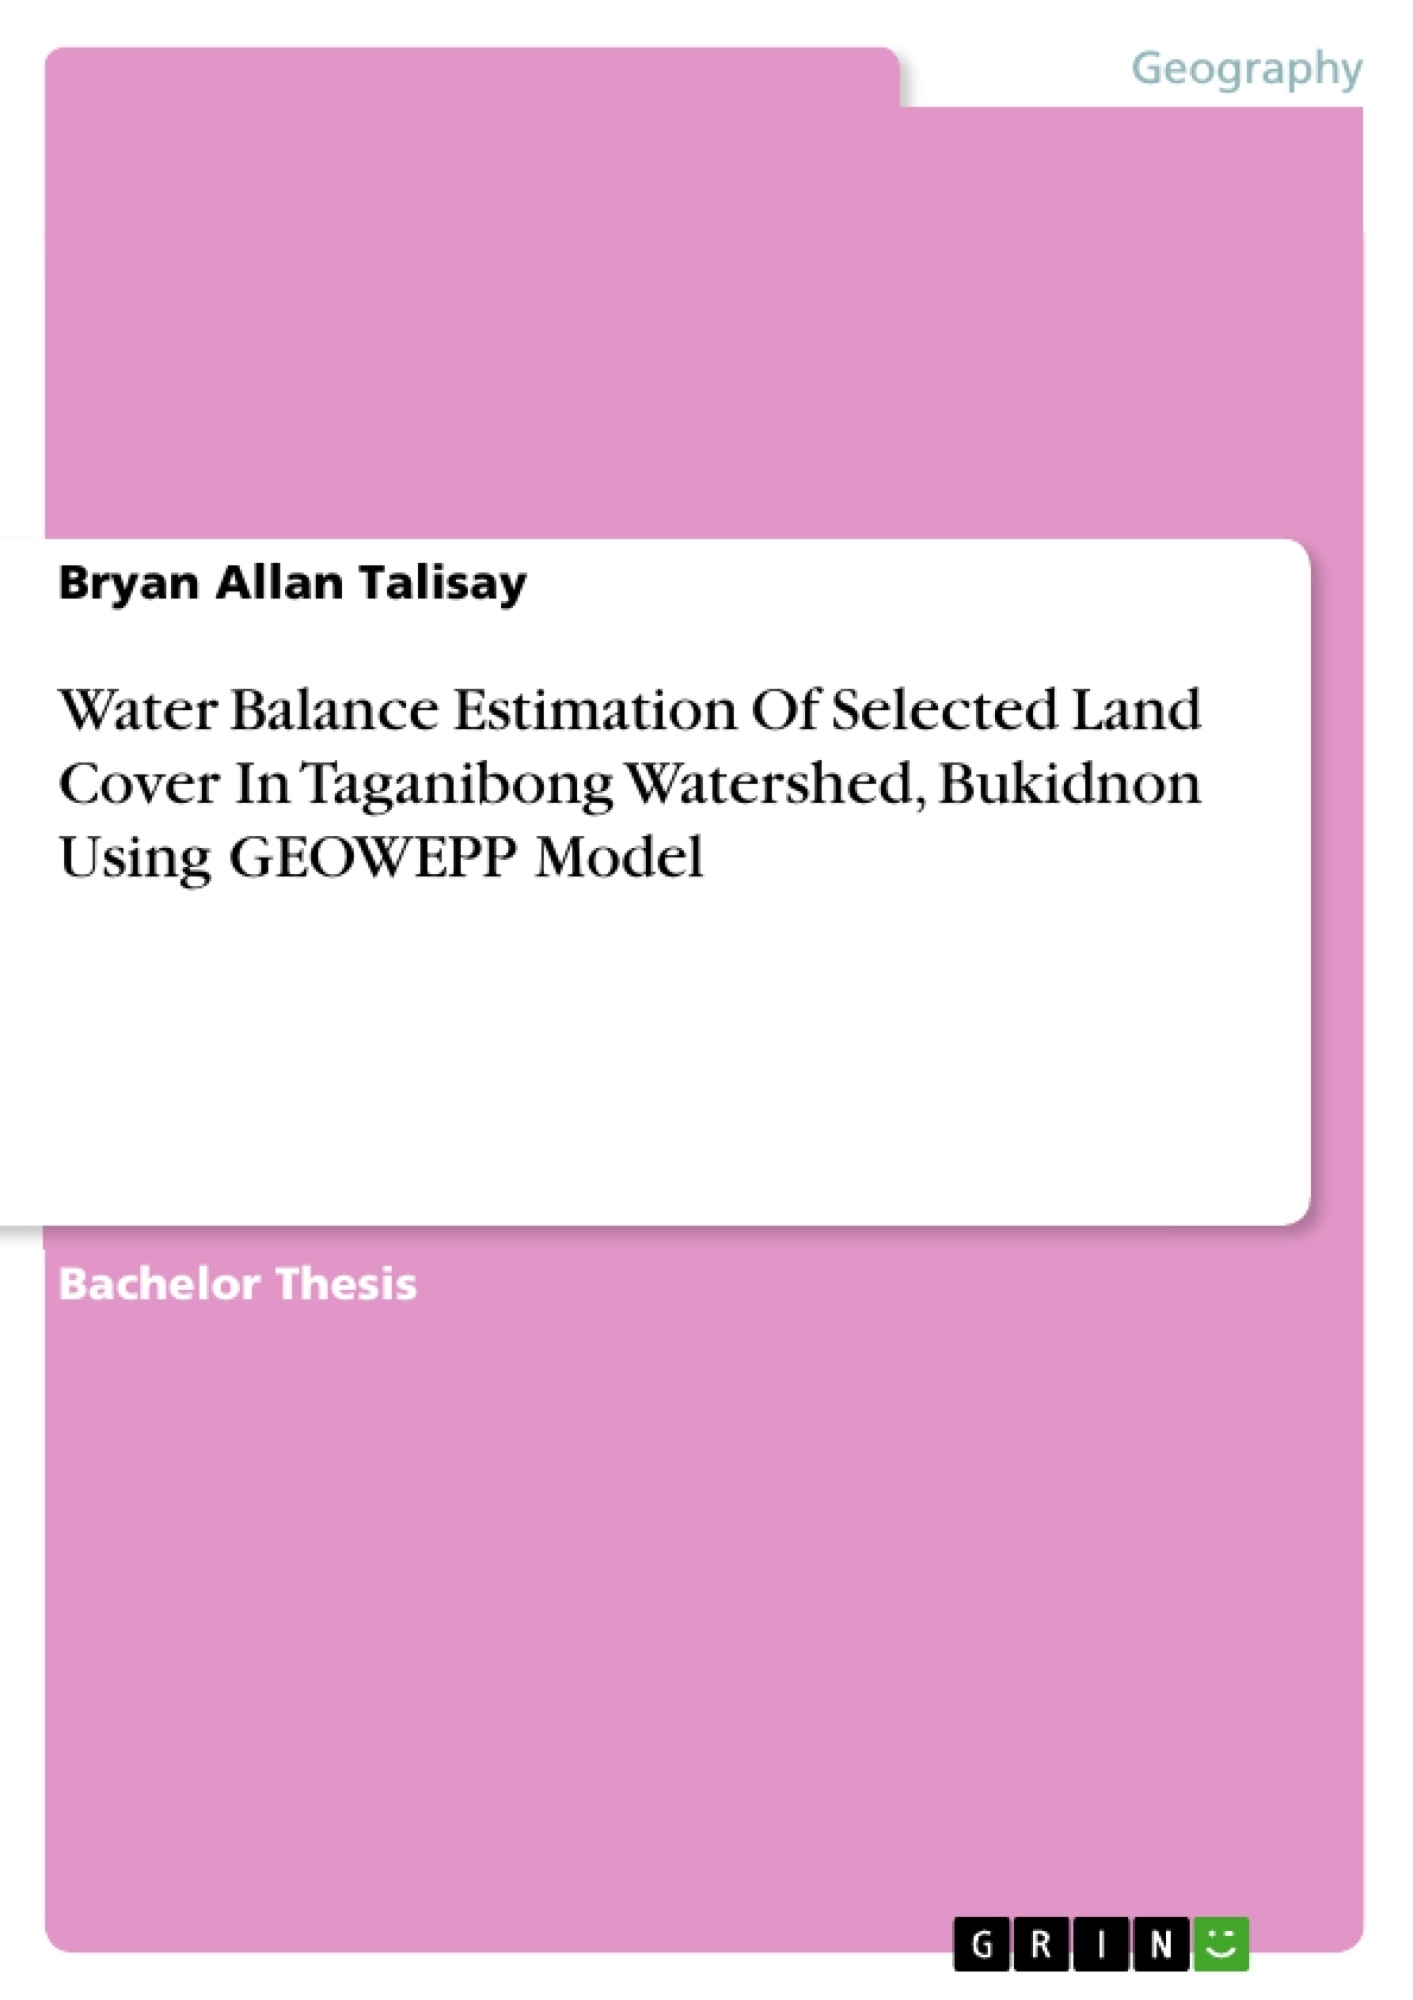 Title: Water Balance Estimation Of Selected Land Cover In Taganibong Watershed, Bukidnon Using GEOWEPP Model